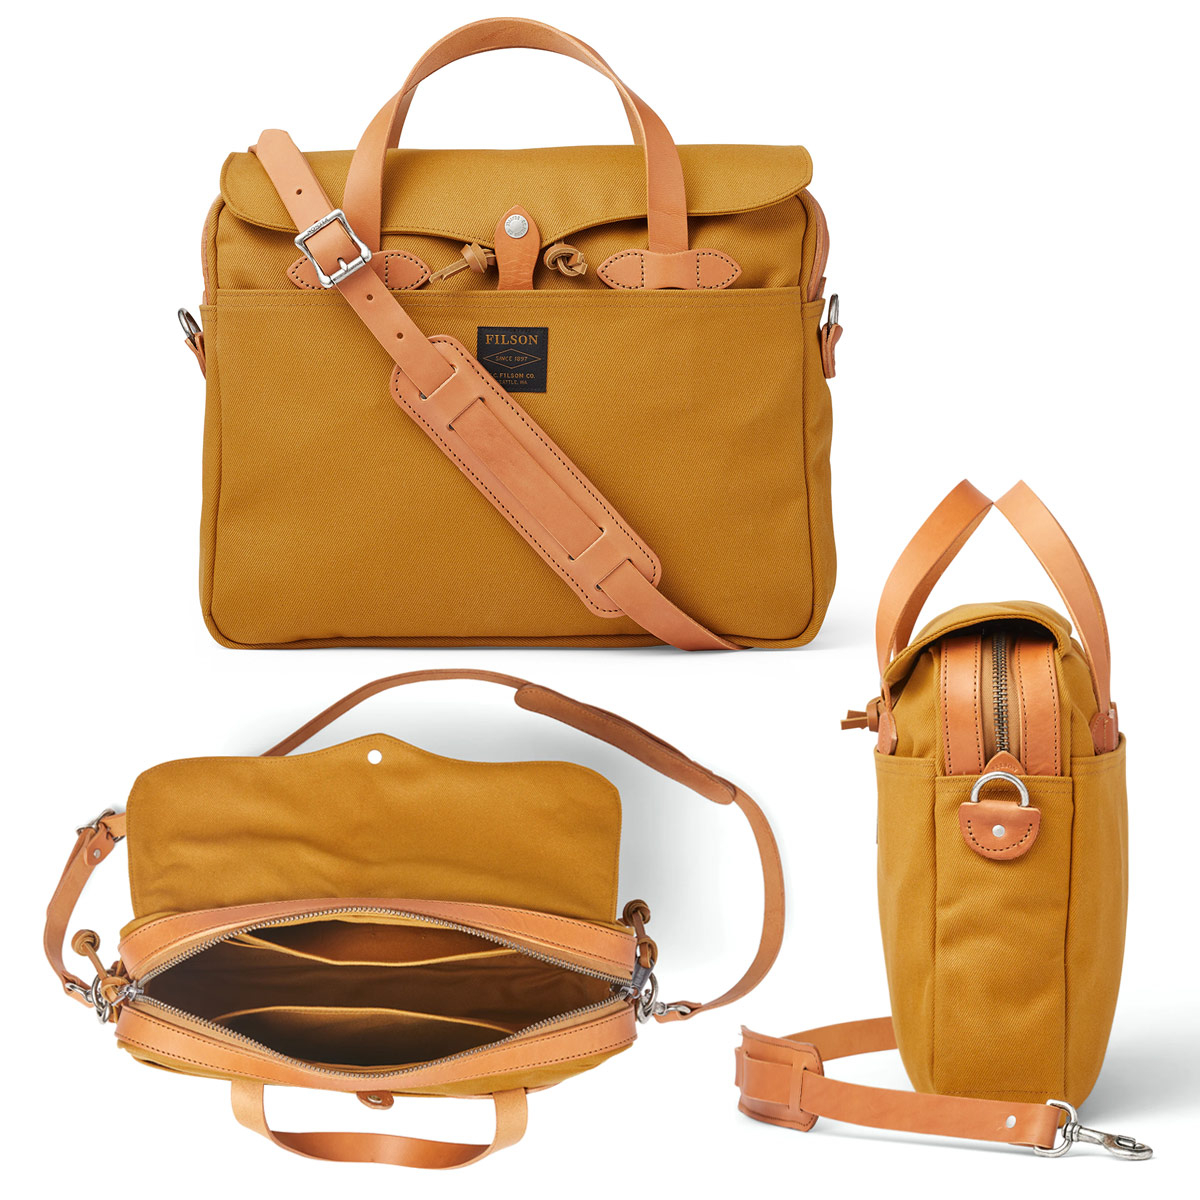 Filson Original Briefcase Chessie Tan, past goed in een urban omgeving